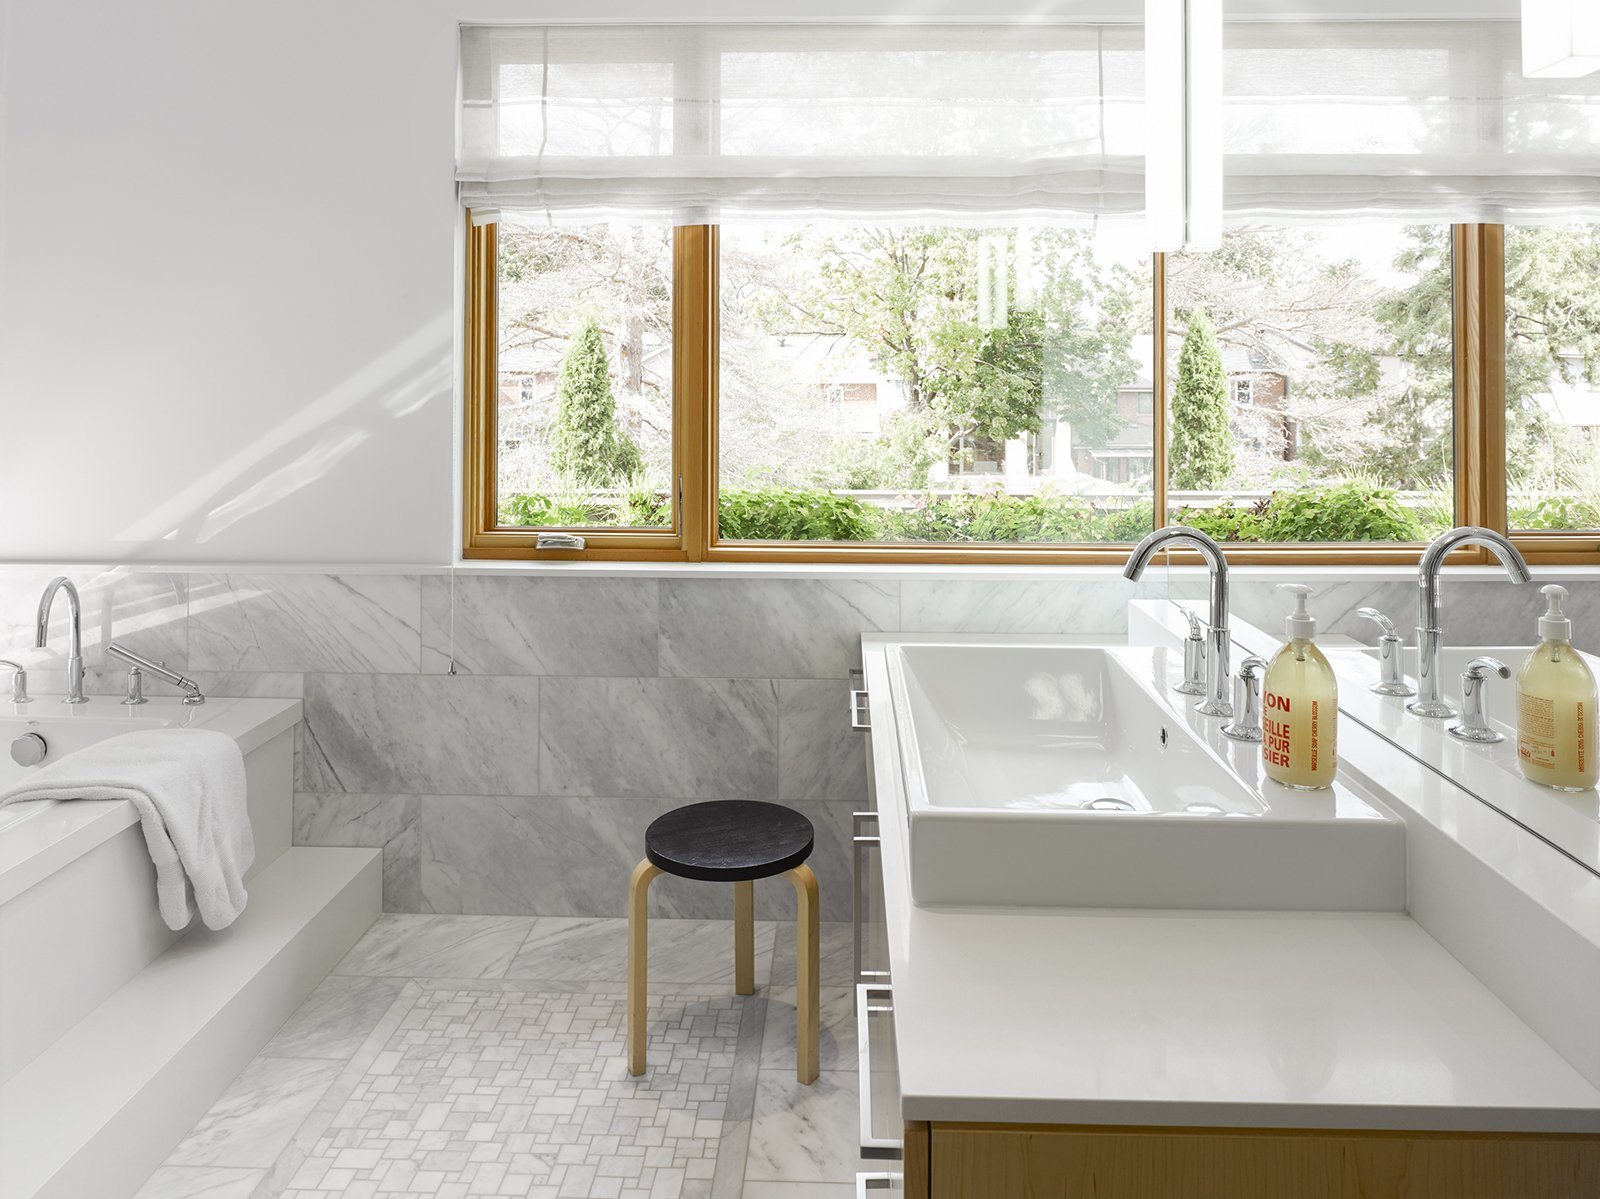 Bath Room and Vessel Sink Carrara marble clads the spacious bathroom.  Photo 7 of 11 in Smart Tech Makes this Modern Home Ultra Energy Efficient